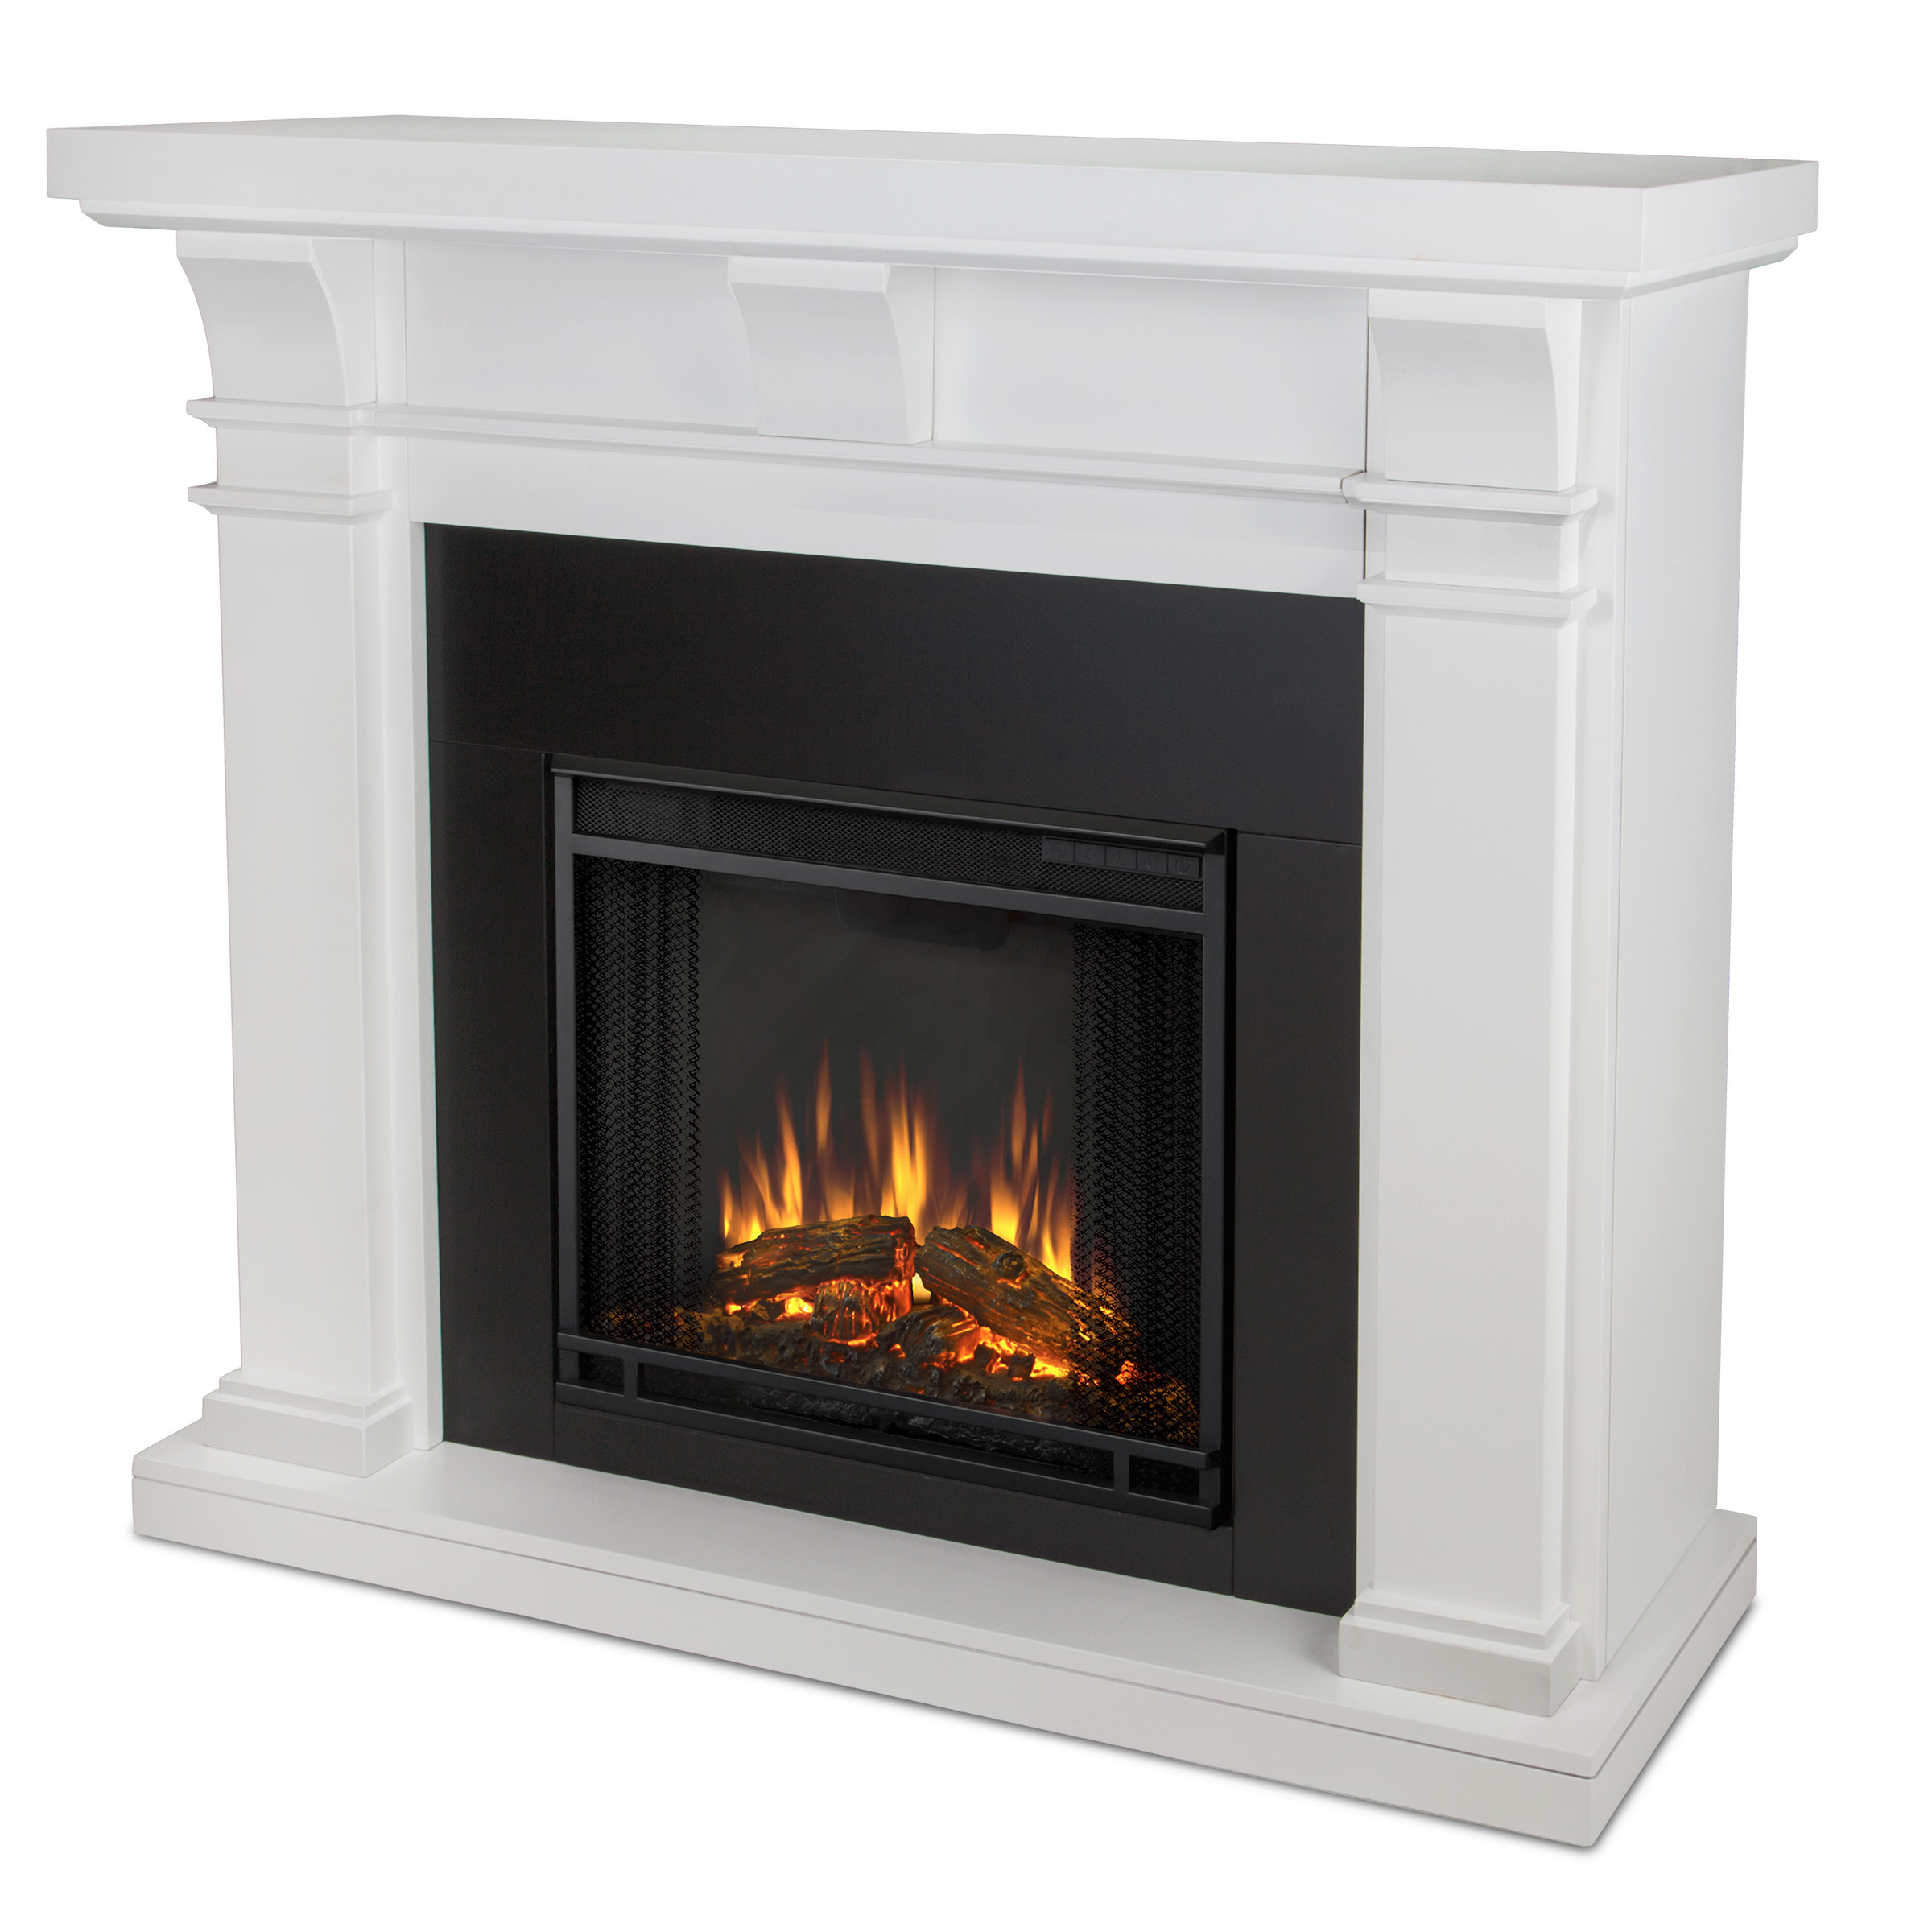 Best ideas about Real Flame Electric Fireplace . Save or Pin Real Flame Porter Electric Fireplace & Reviews Now.